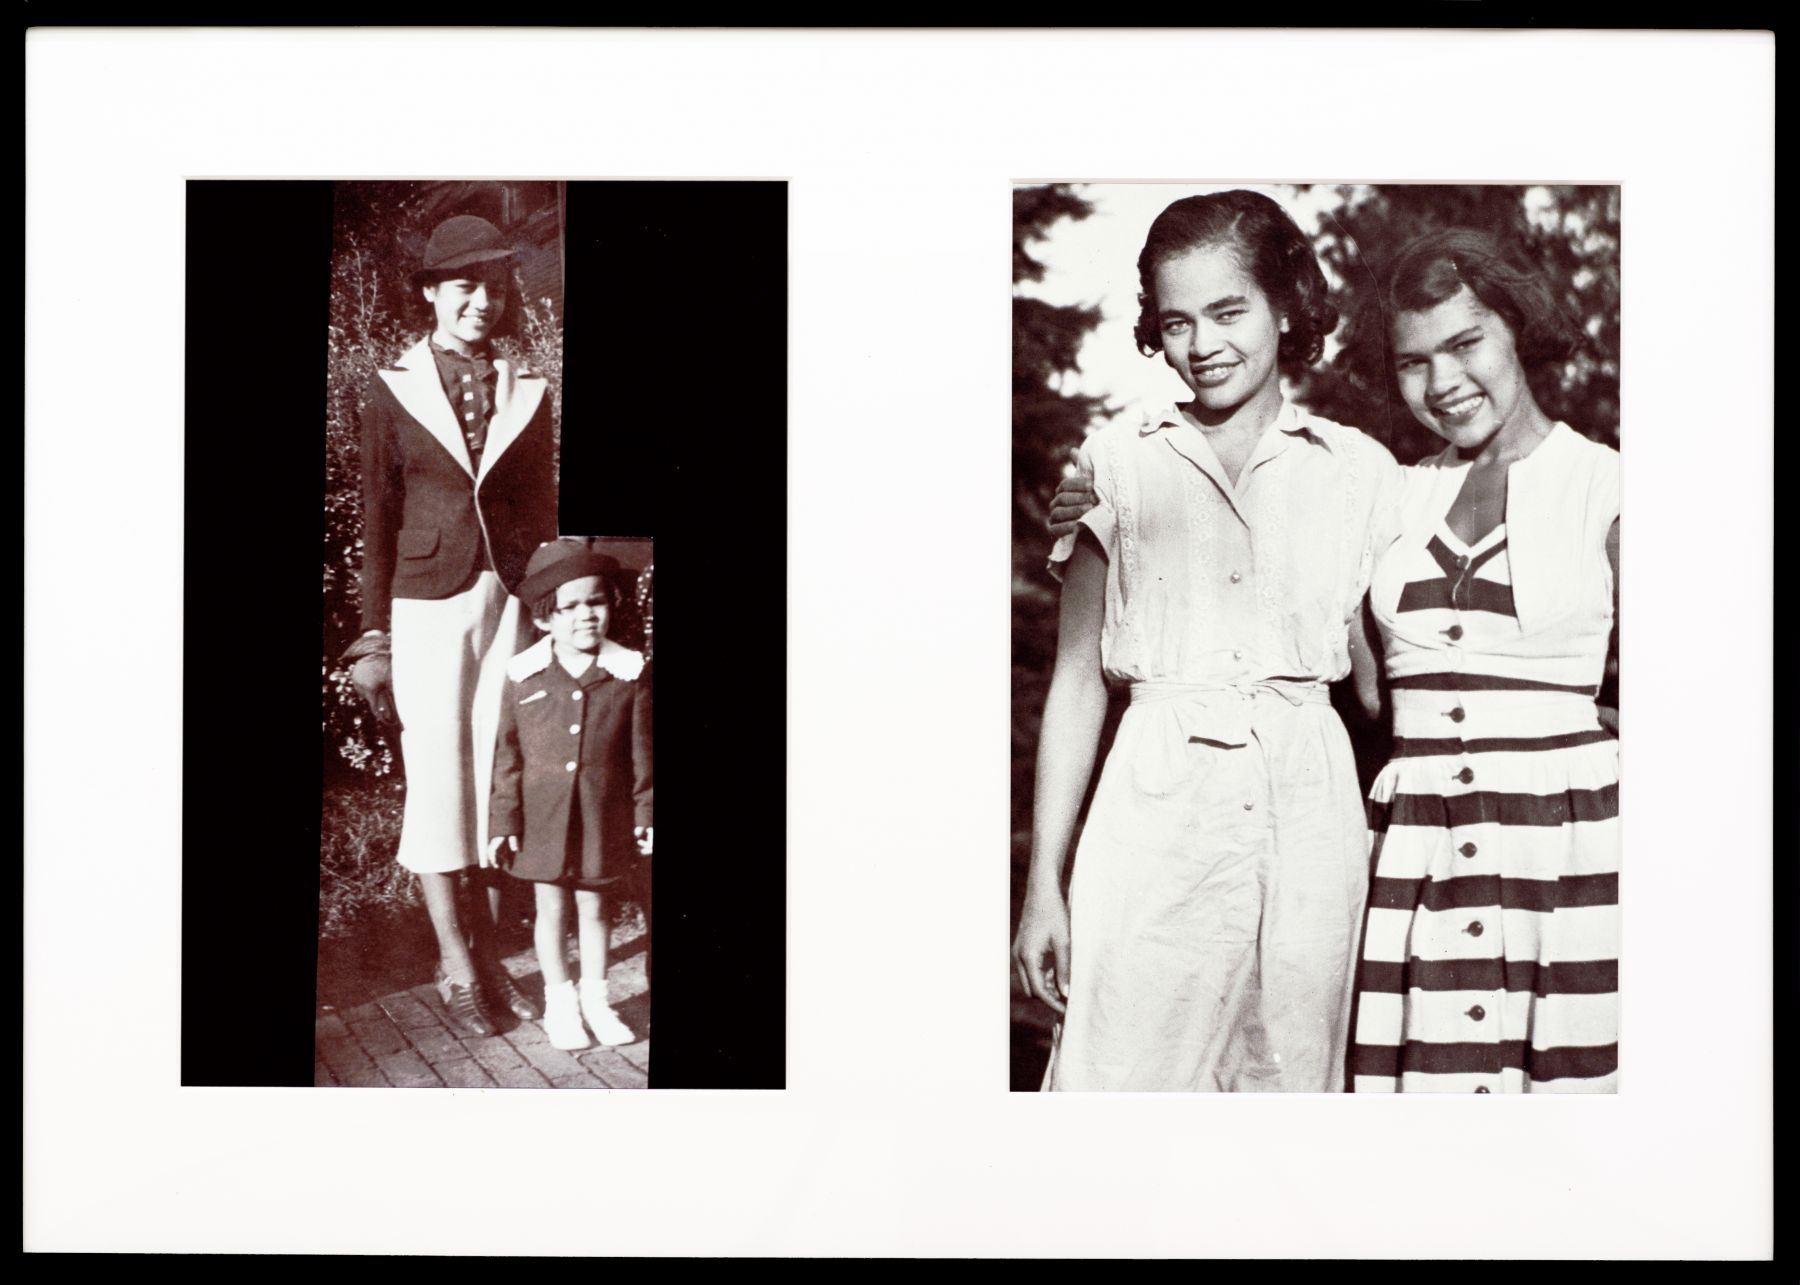 Miscegenated Family Album (Hero Worship), L: Devonia, age 14; and Lorraine, age 3; R: Devonia, age 24; and Lorraine, age 13, 1980/1994, Cibachrome prints, 26h x 37w in (66.04h x 93.98w cm)